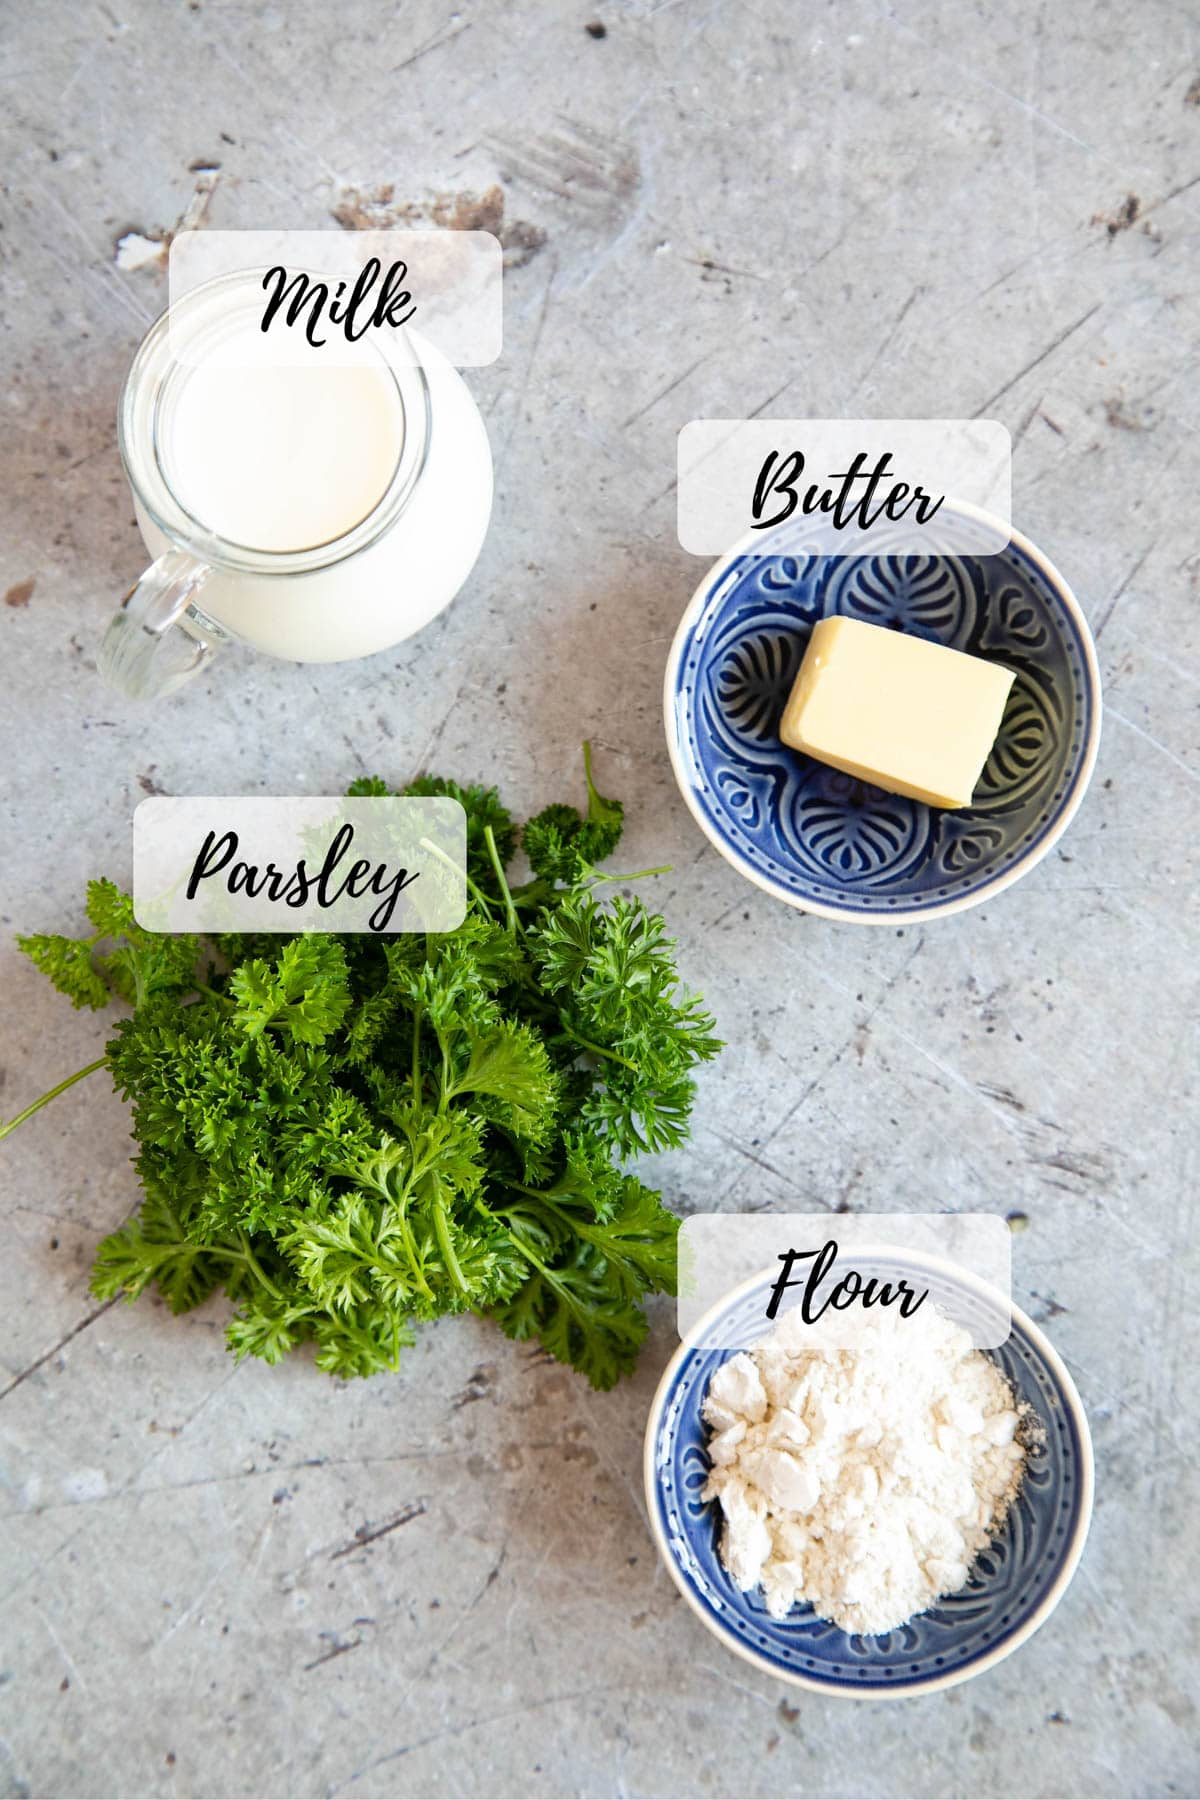 Ingredients for parsley sauce ready for cooking - flour, butter, milk, and parsley.